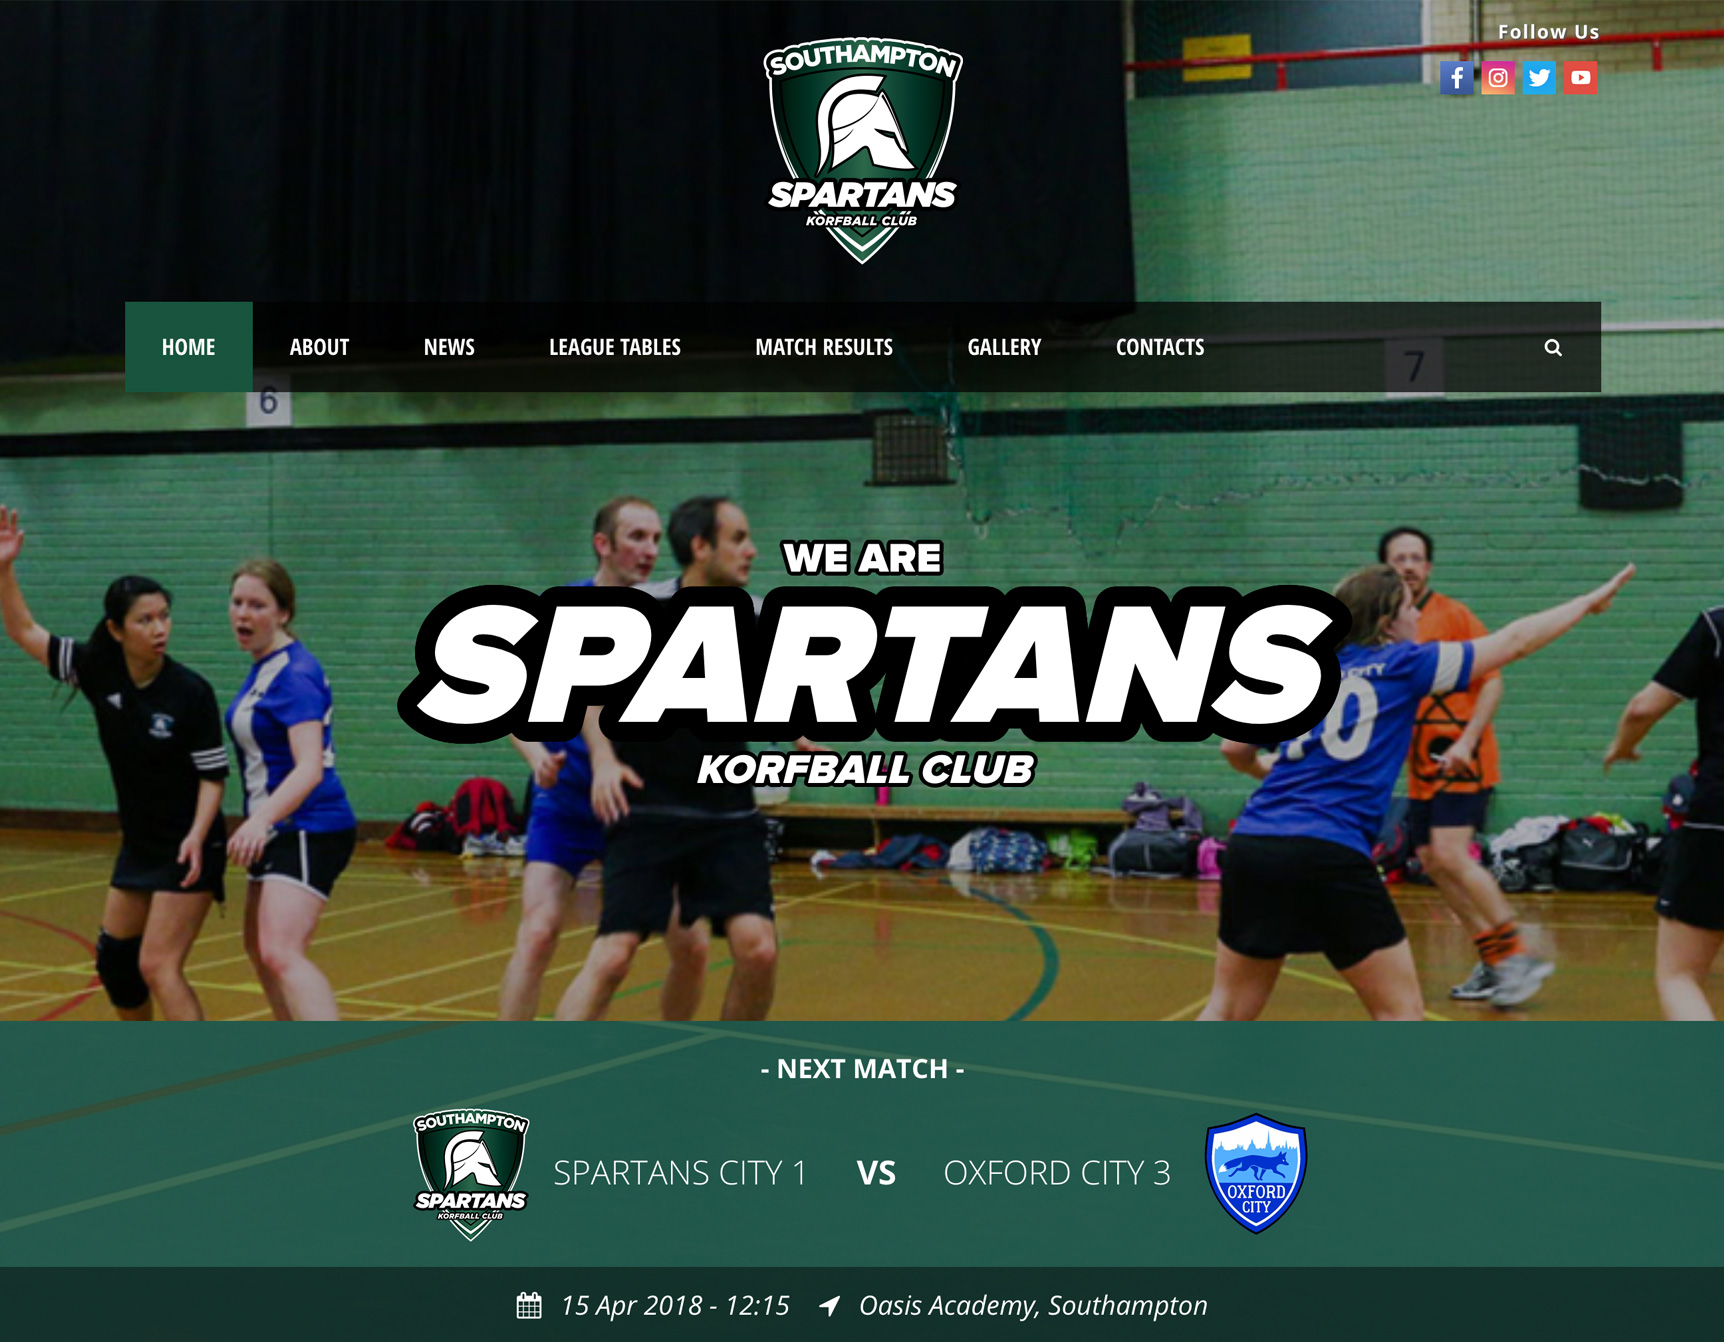 Spartans Korfball Website Homepage